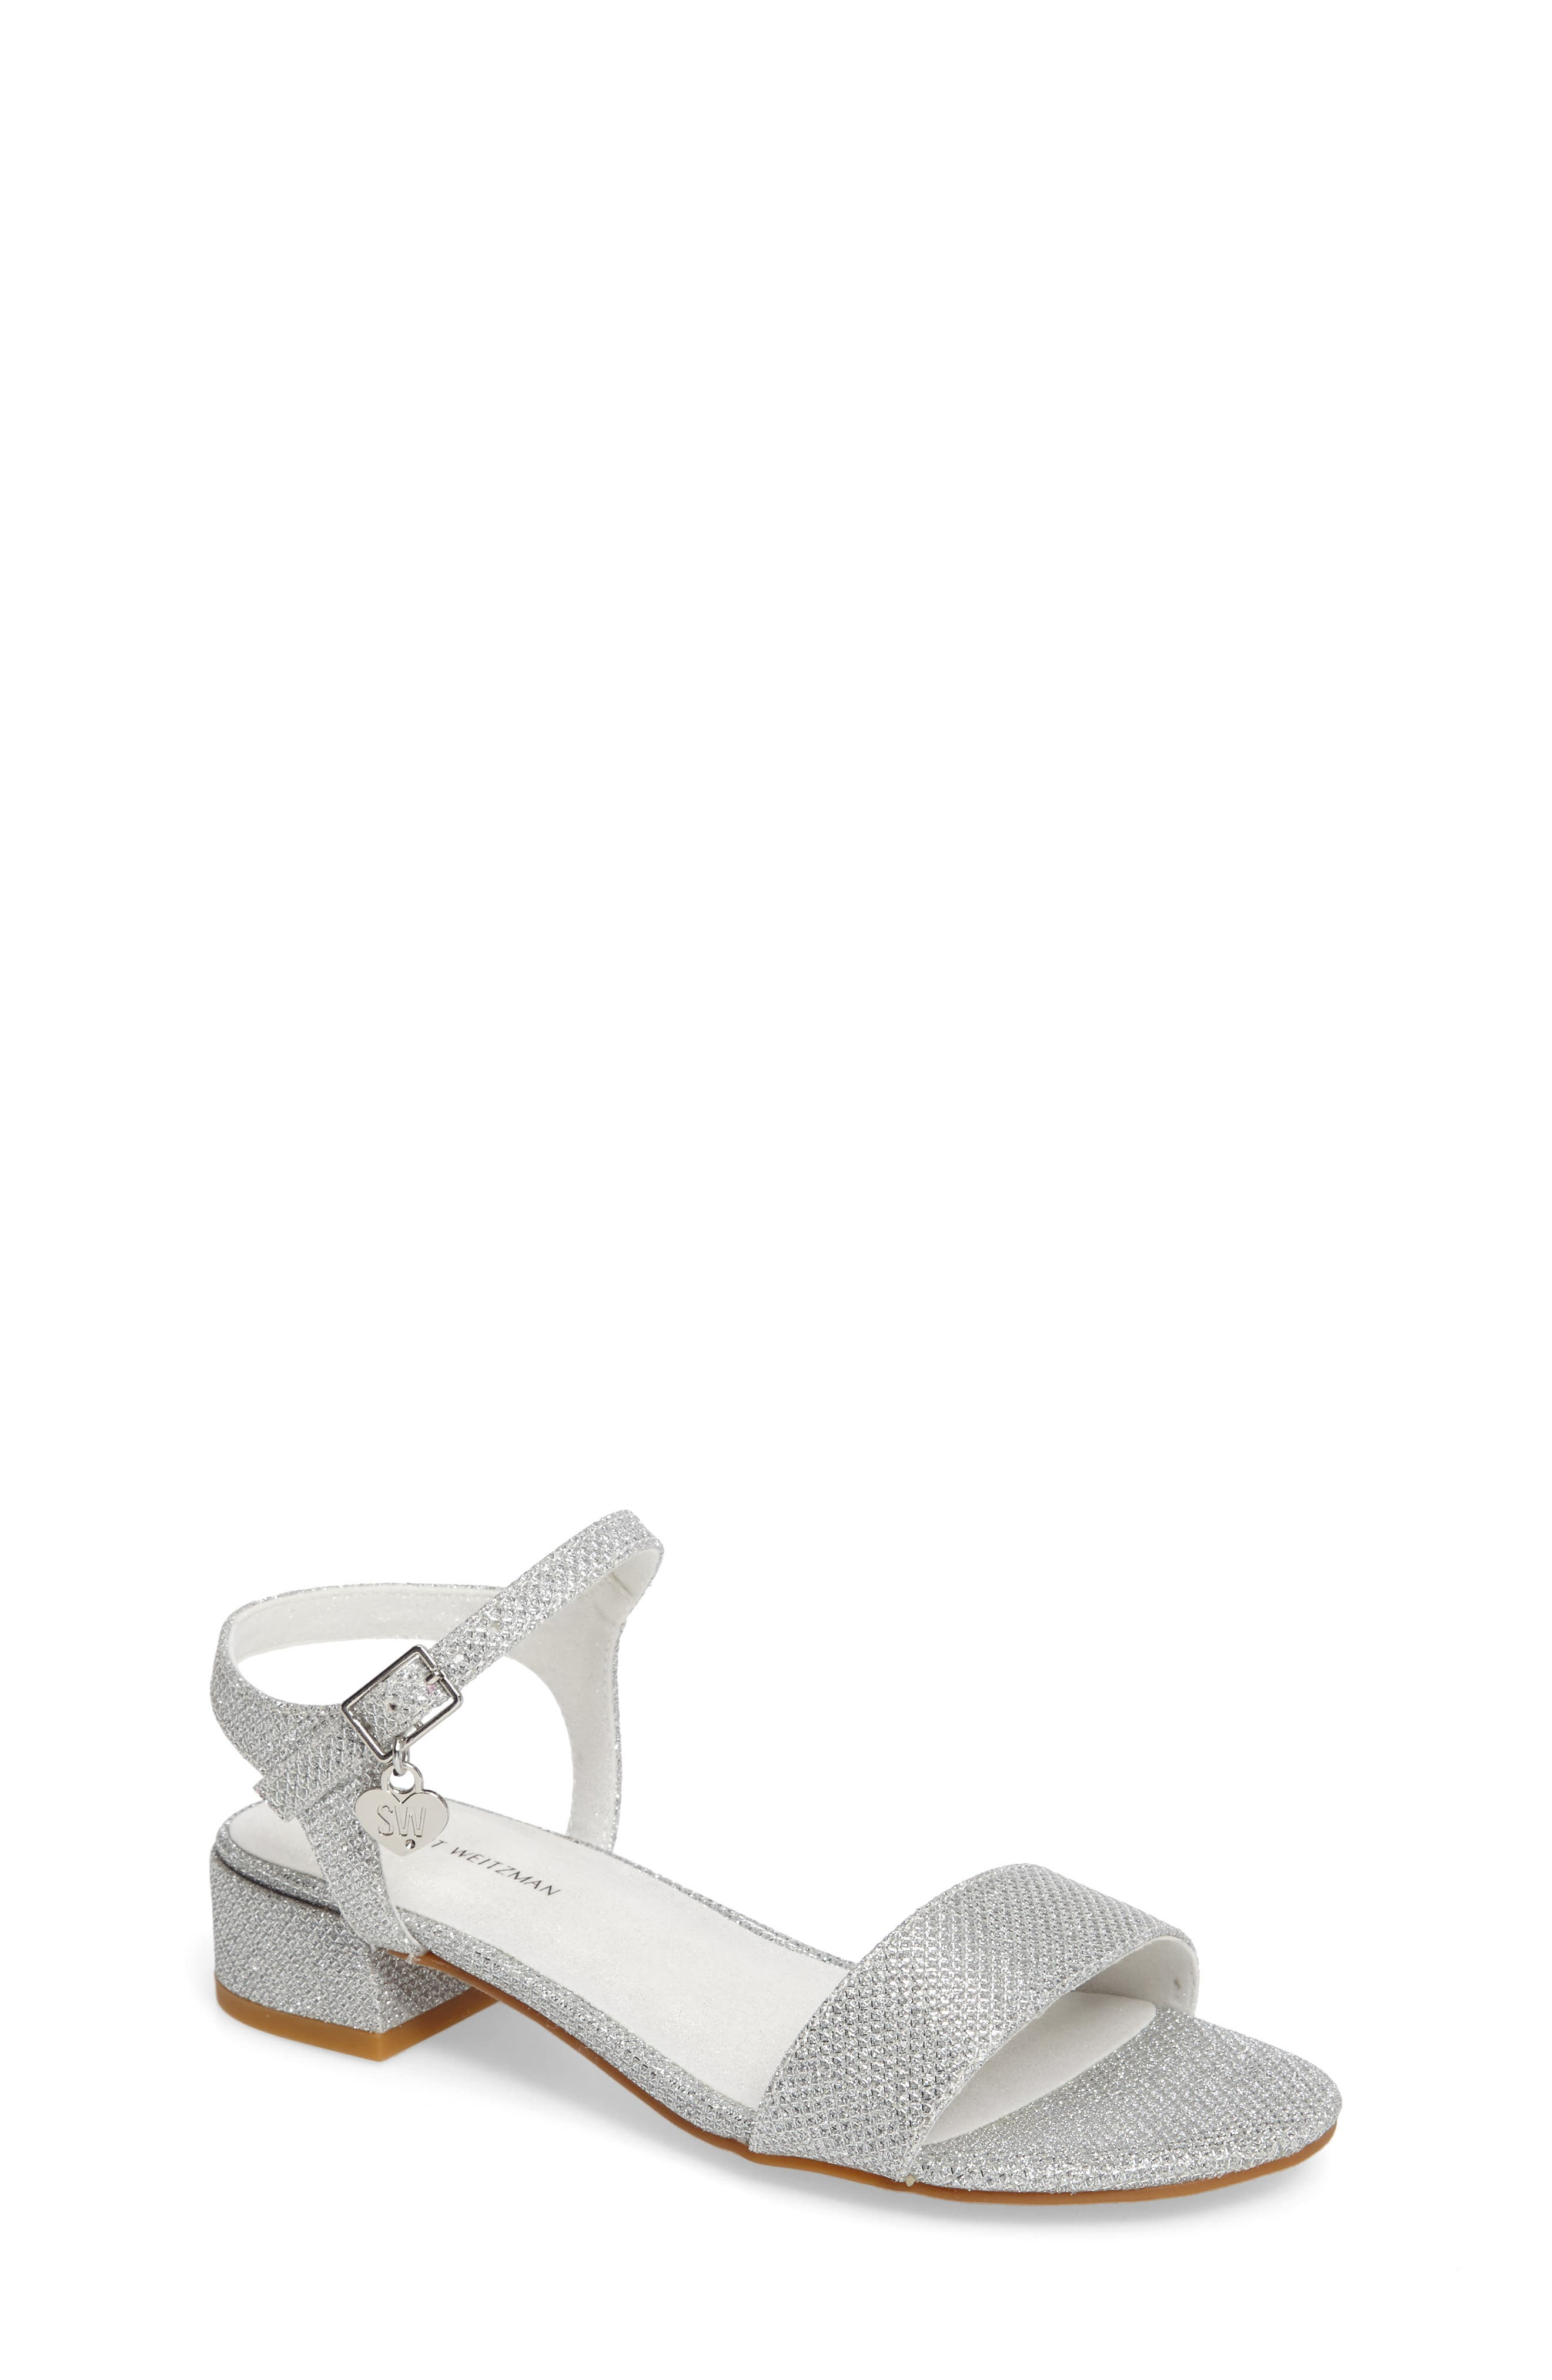 Stuart Weitzman Penelope Sandal (Toddler, Little Kid & Big Kid)